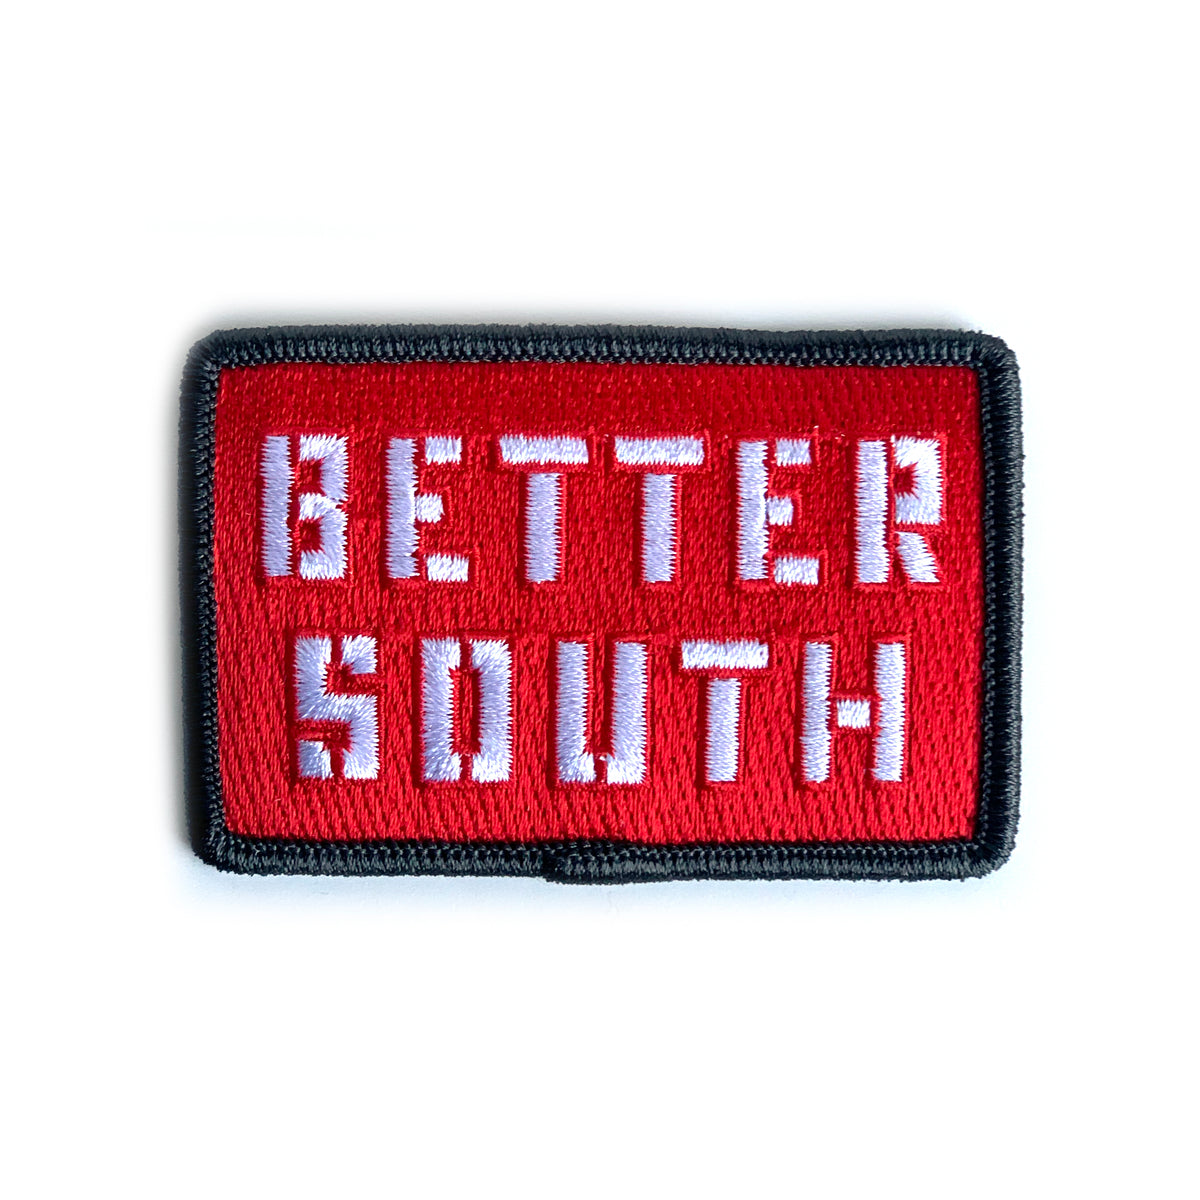 Better South Patch - Navy